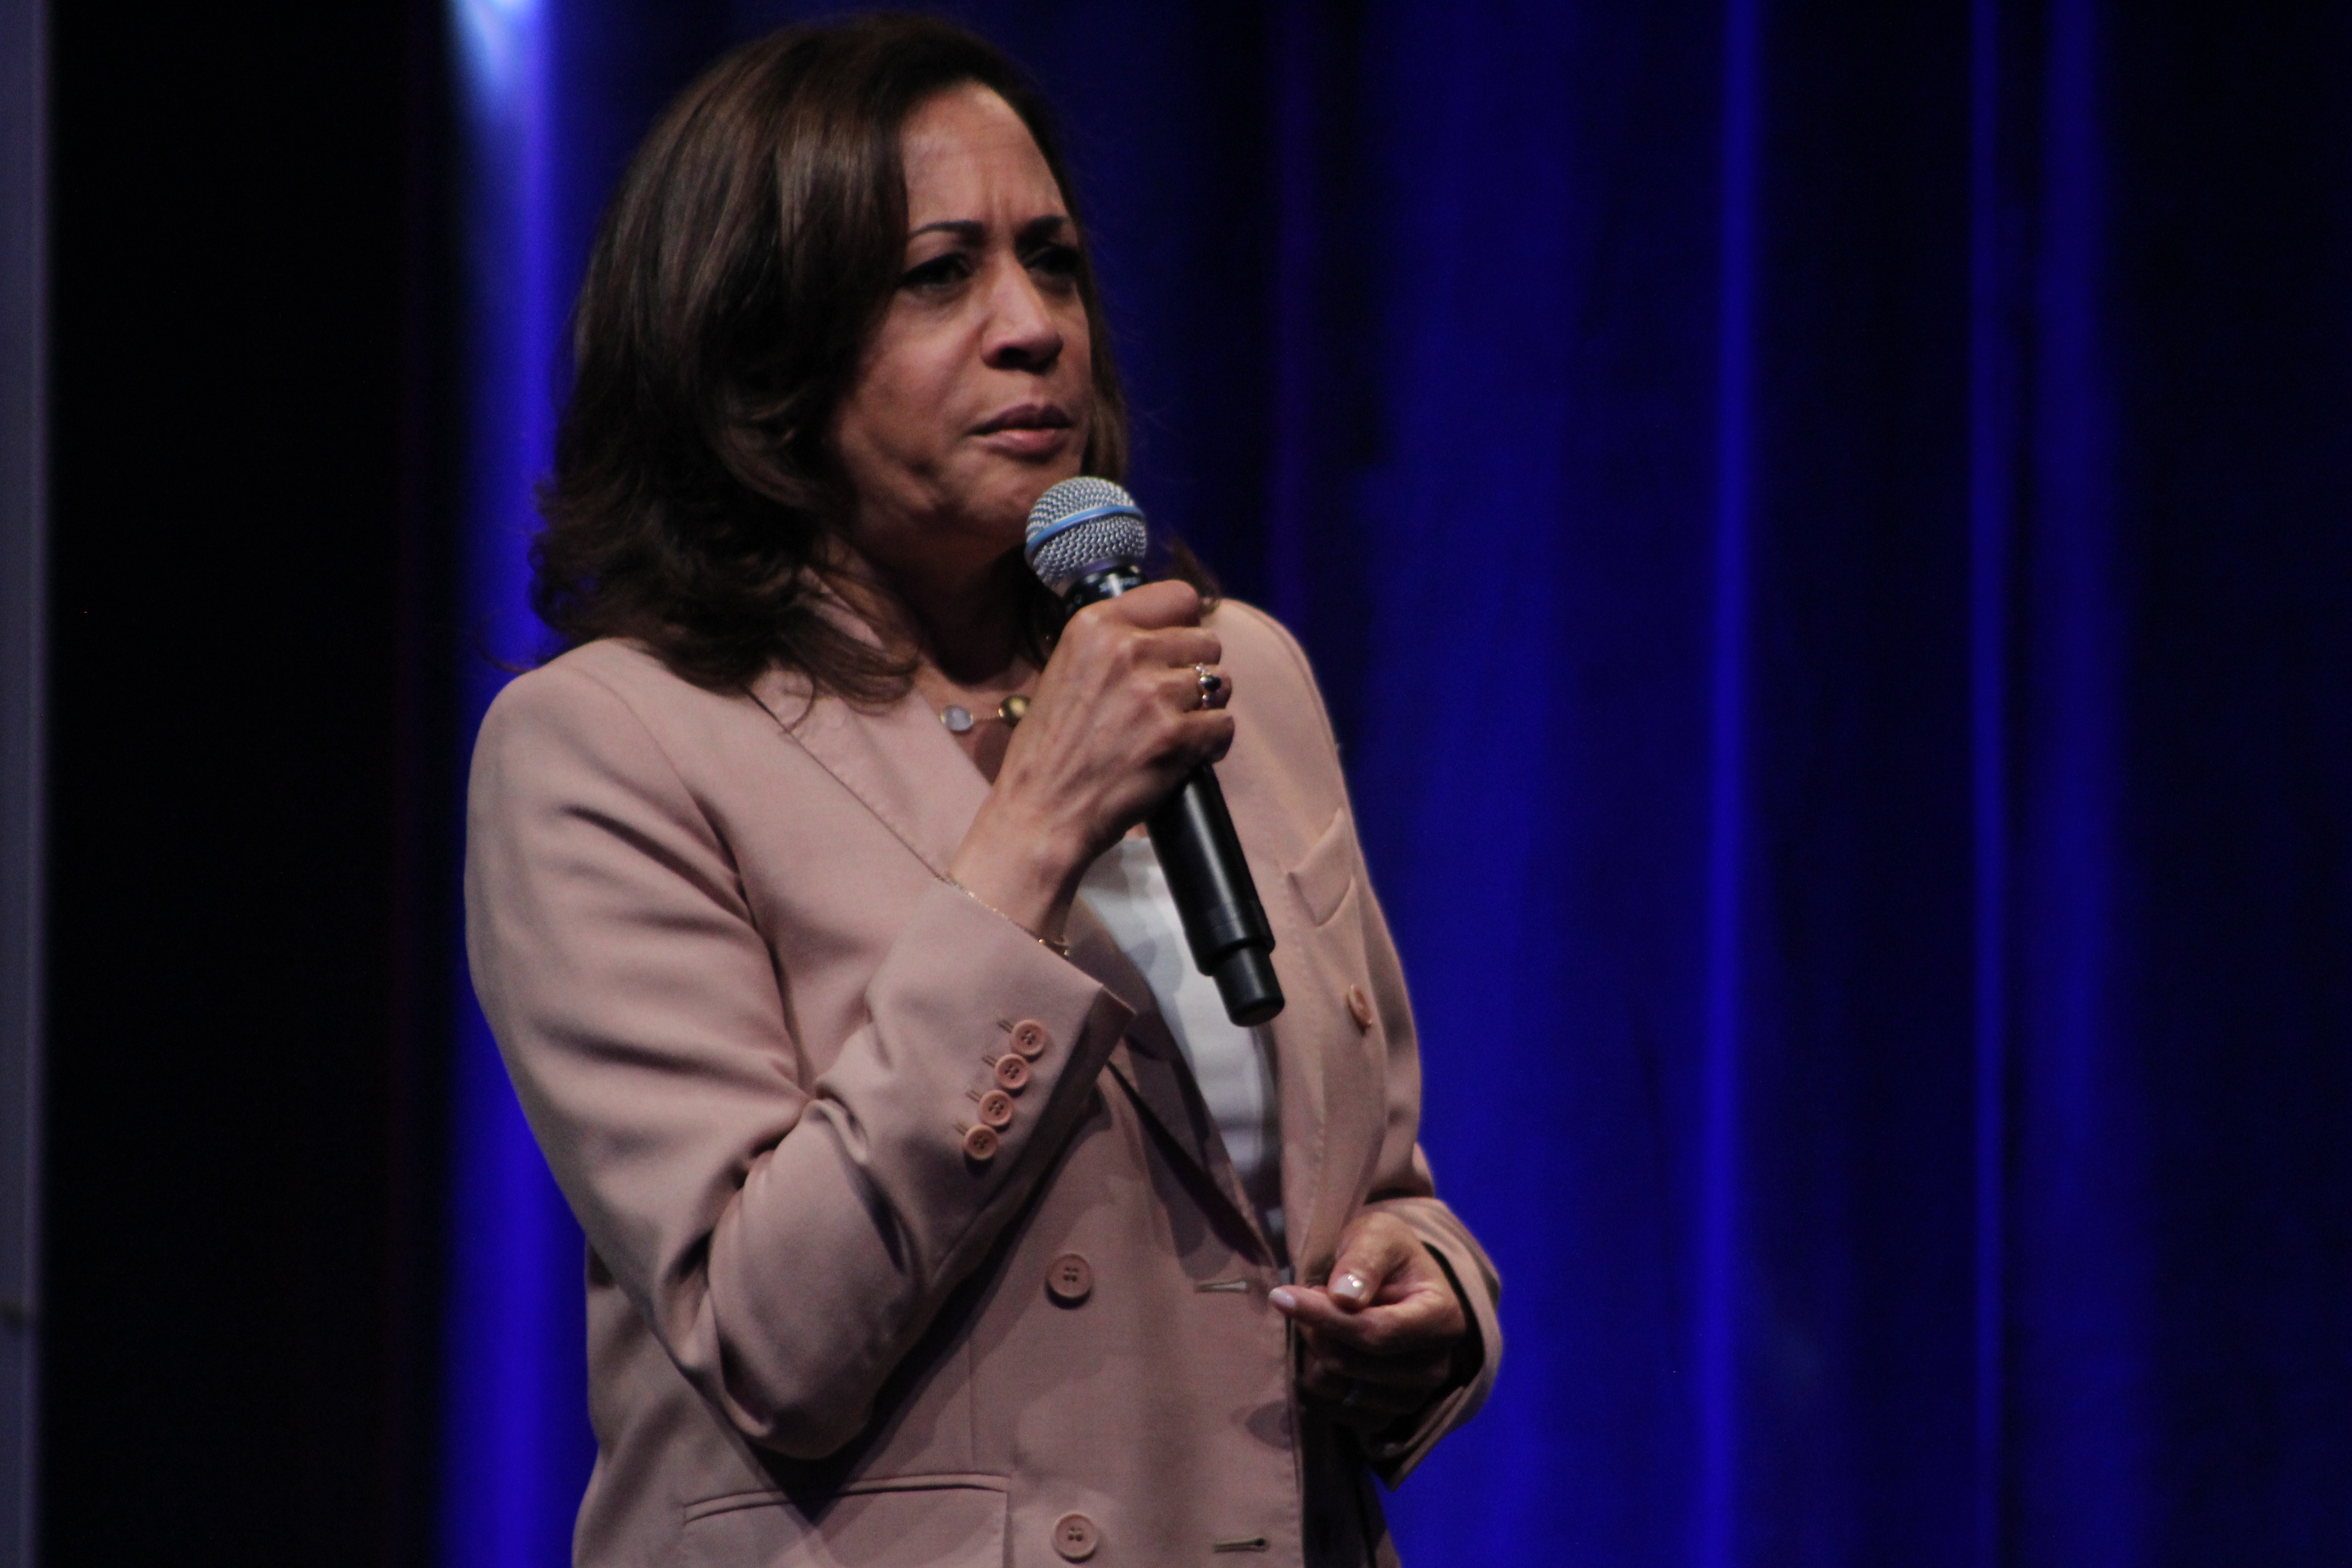 U.S. Sen. Kamala Harris speaks at a forum for Democratic presidential candidates Friday as part of the National Urban League's annual conference.